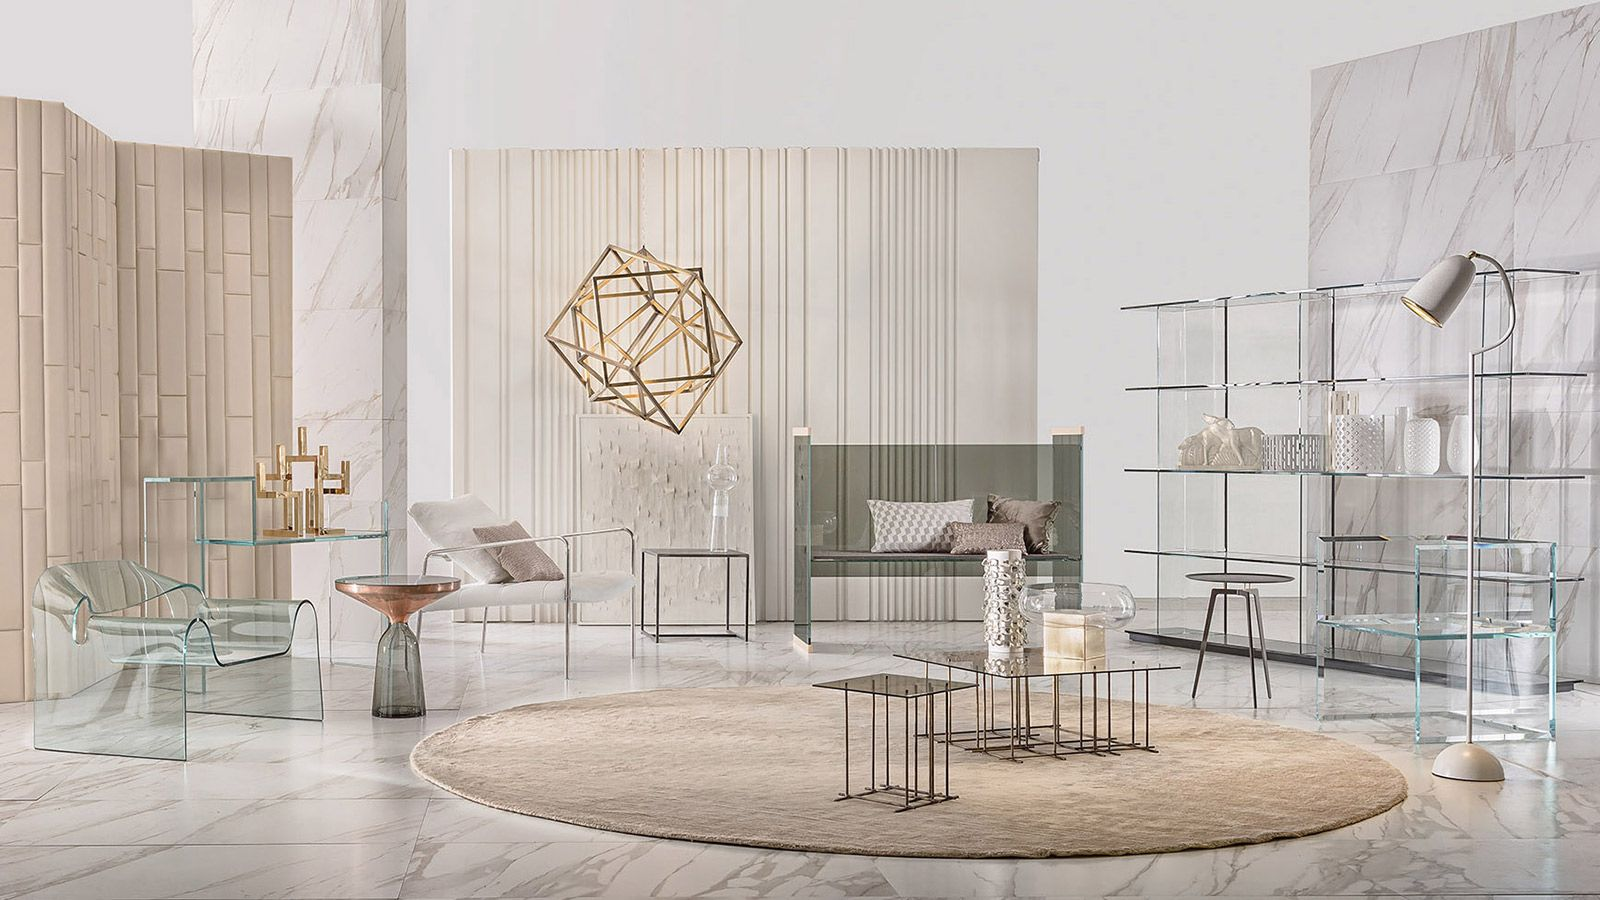 Creative partition ideas courtesy interior architect mohamed amer - Bruno Tarsia Architect And Interior Stylist Produces Editorial Photo Shoots Commercial Catalogs